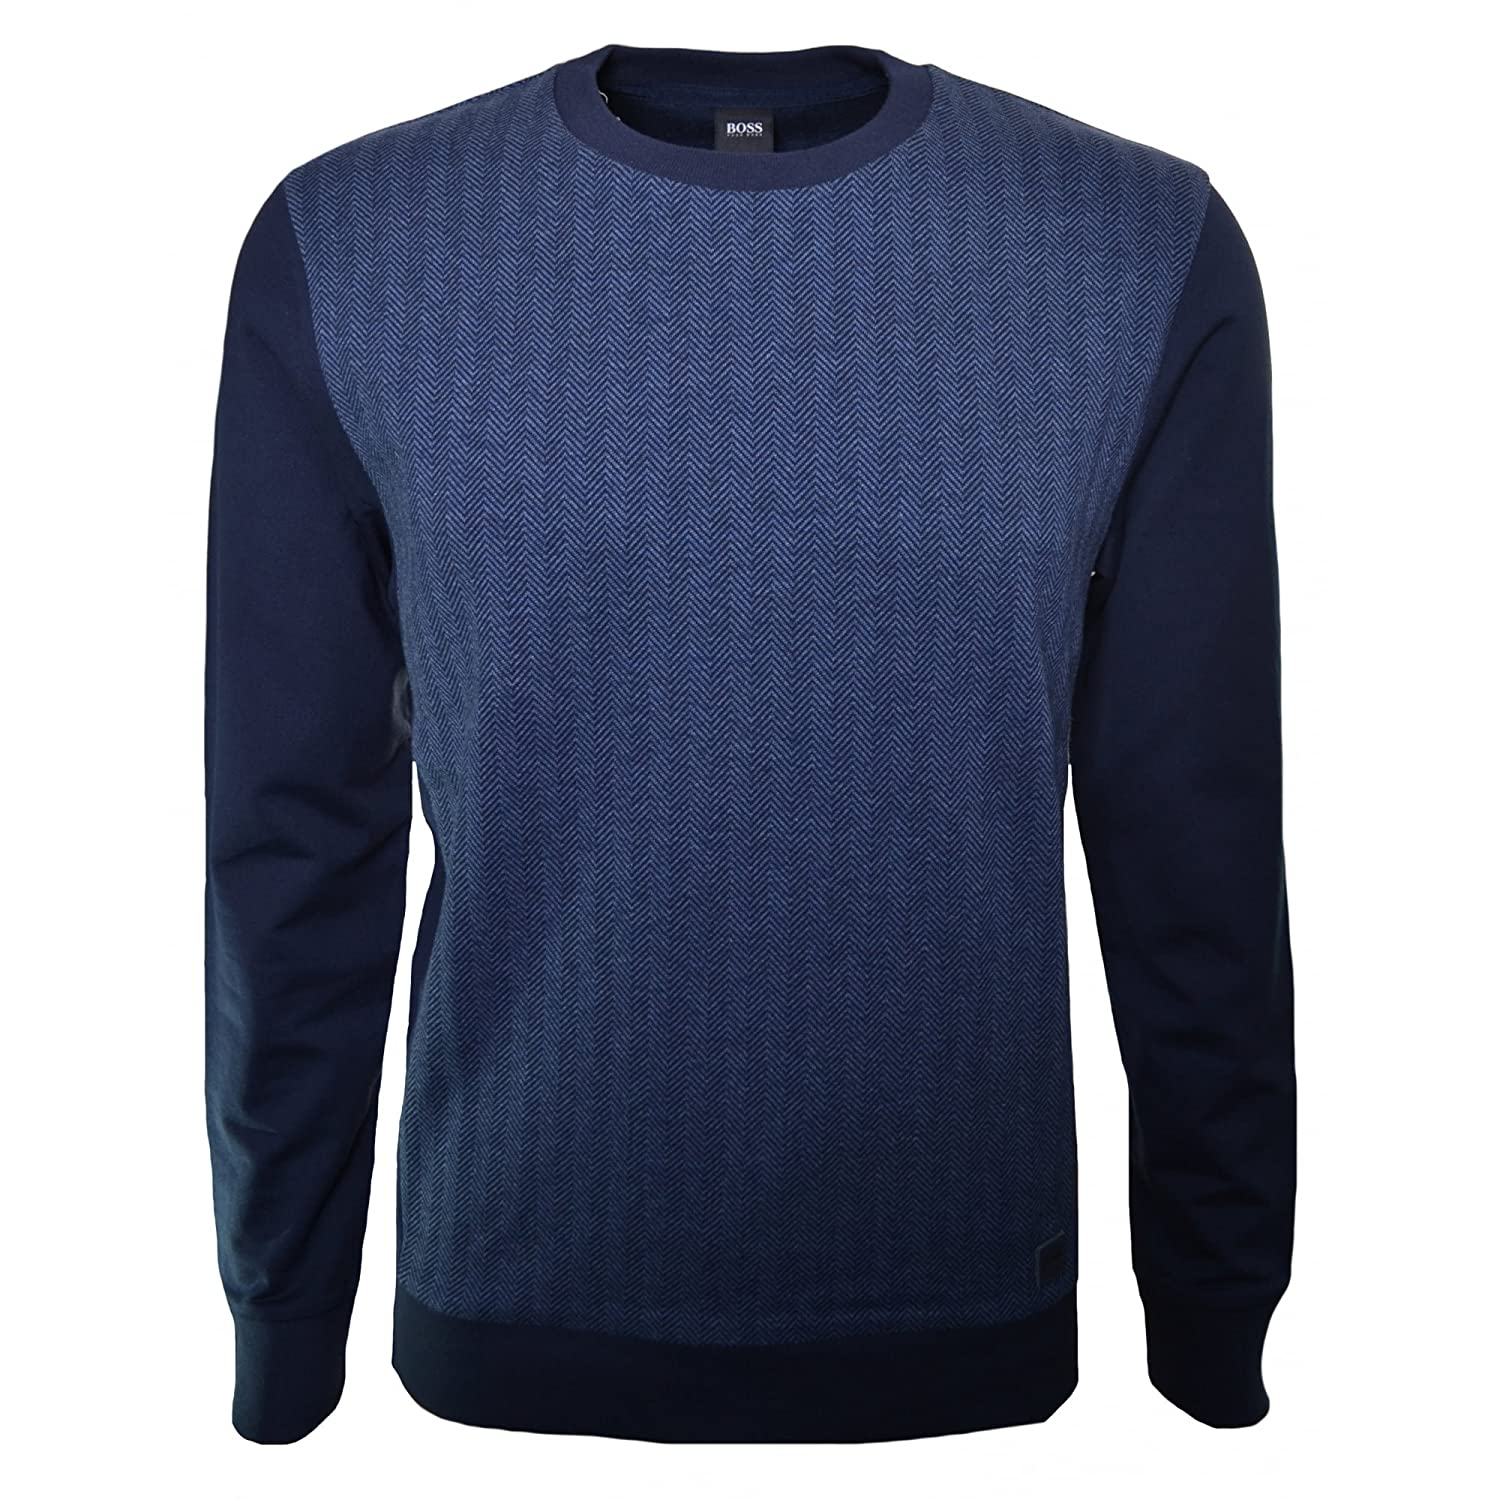 Hugo Boss Men's Hugo Boss Men's Dark Blue Herringbone Sweatshirt